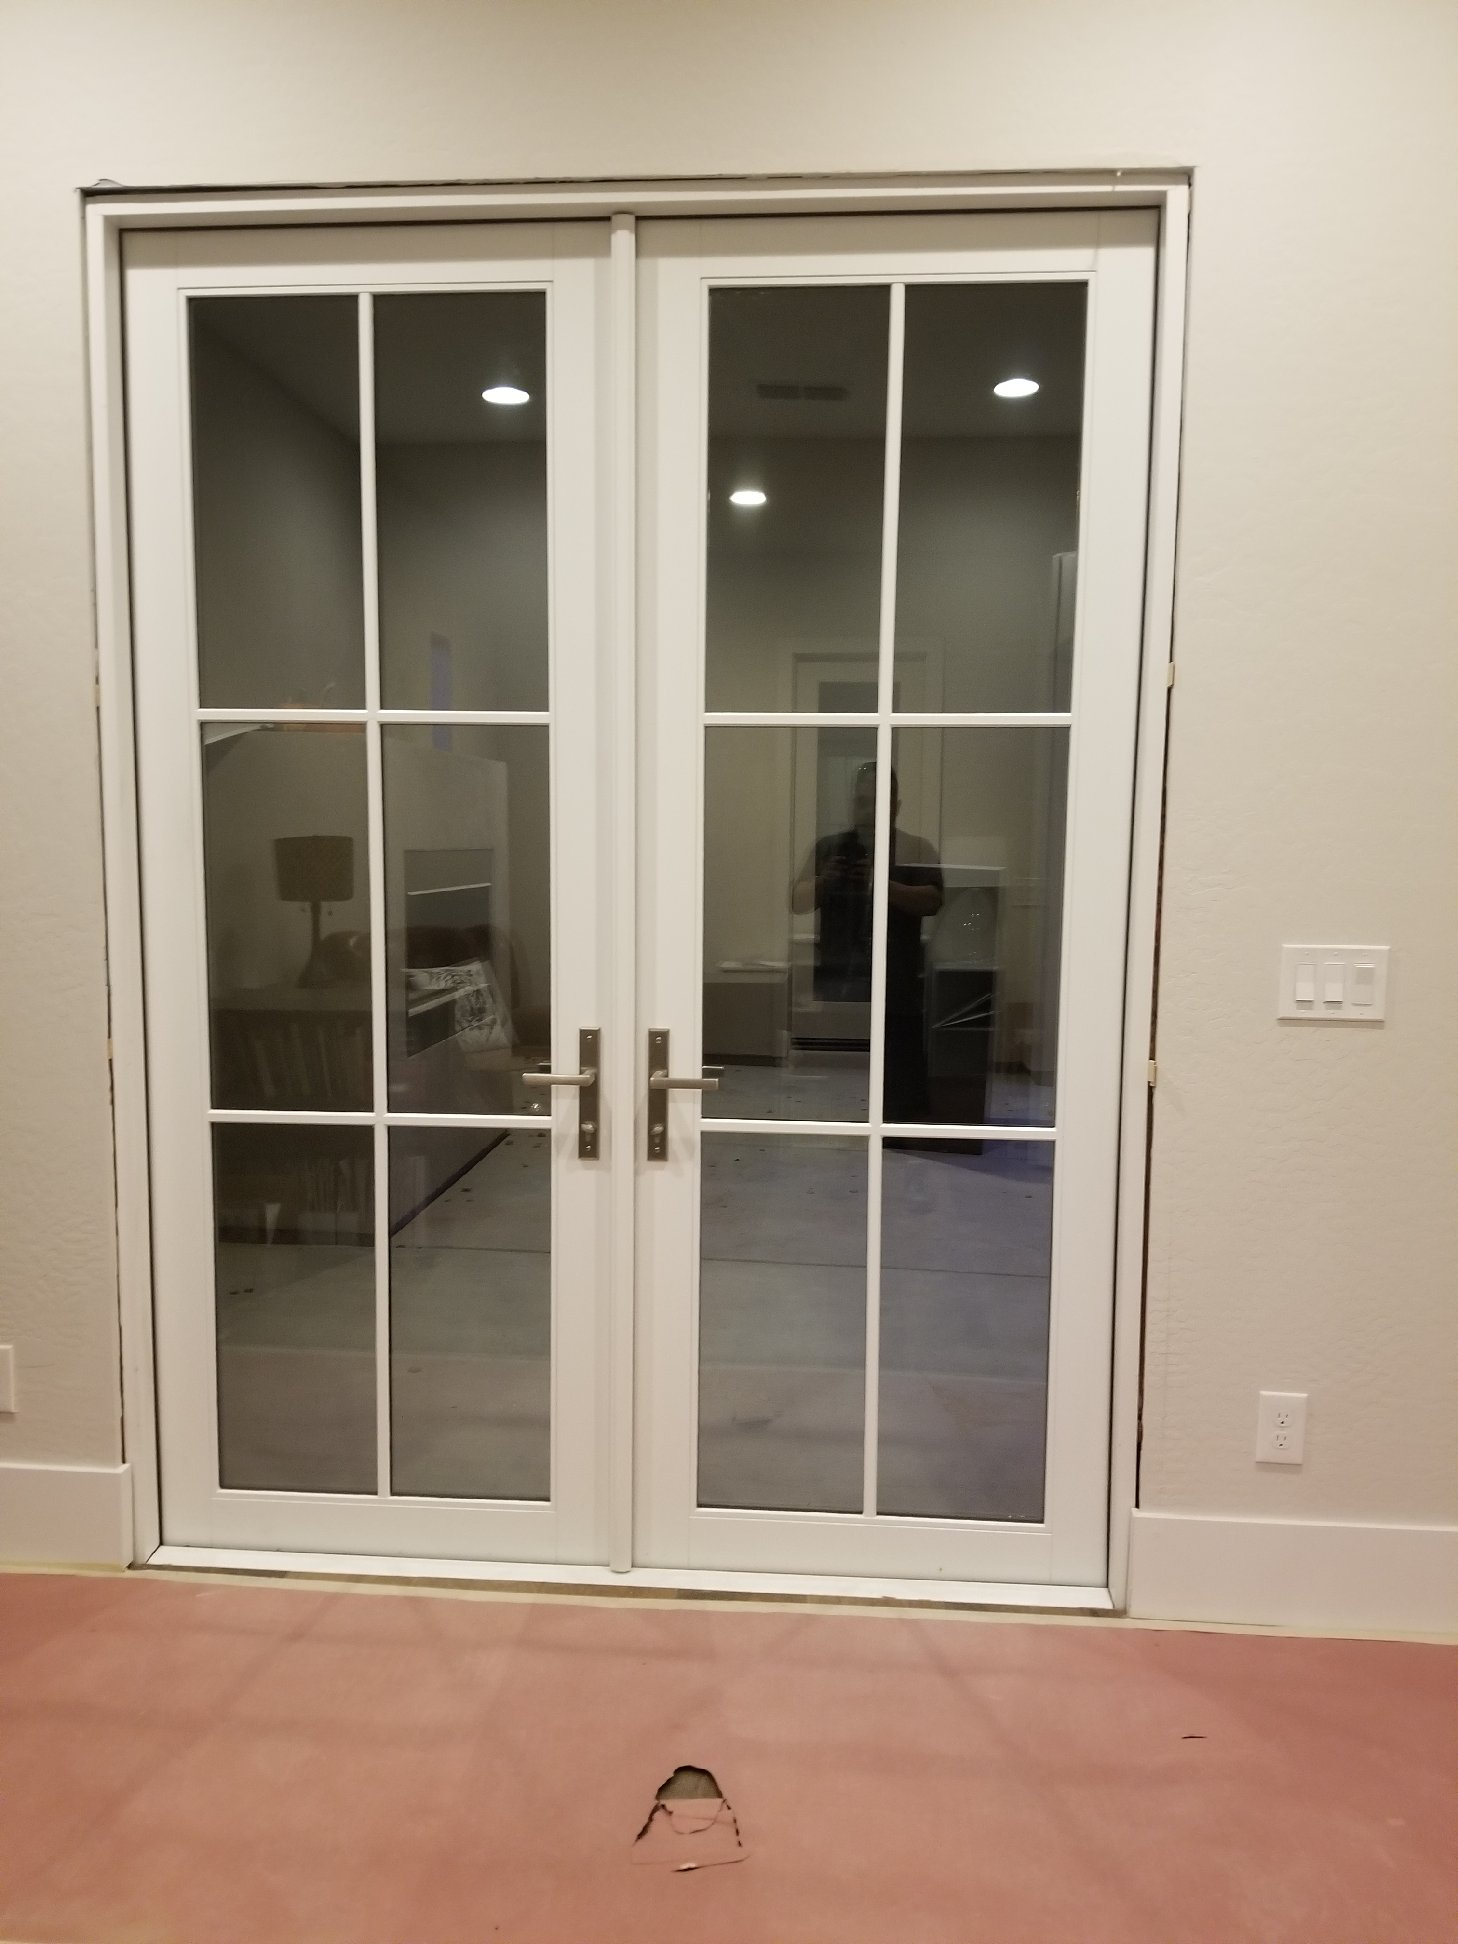 Arizona Window and Door in Scottsdale and Tucson showing back french doors